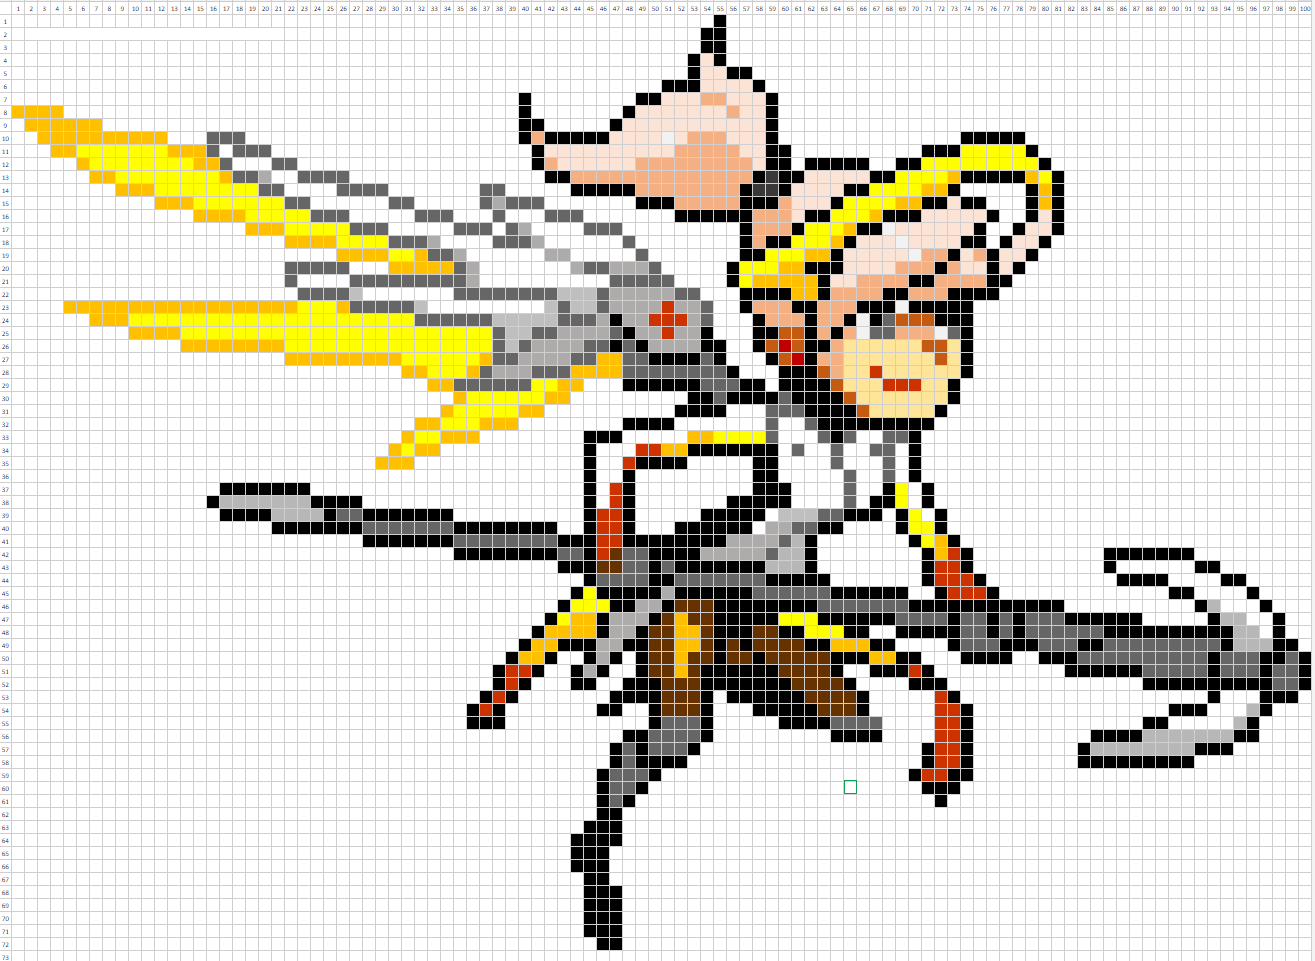 Overwatch Pixel Spray Pattern Mercy Pixel Art Grid Anime Pixel Art Cross Stitch Art